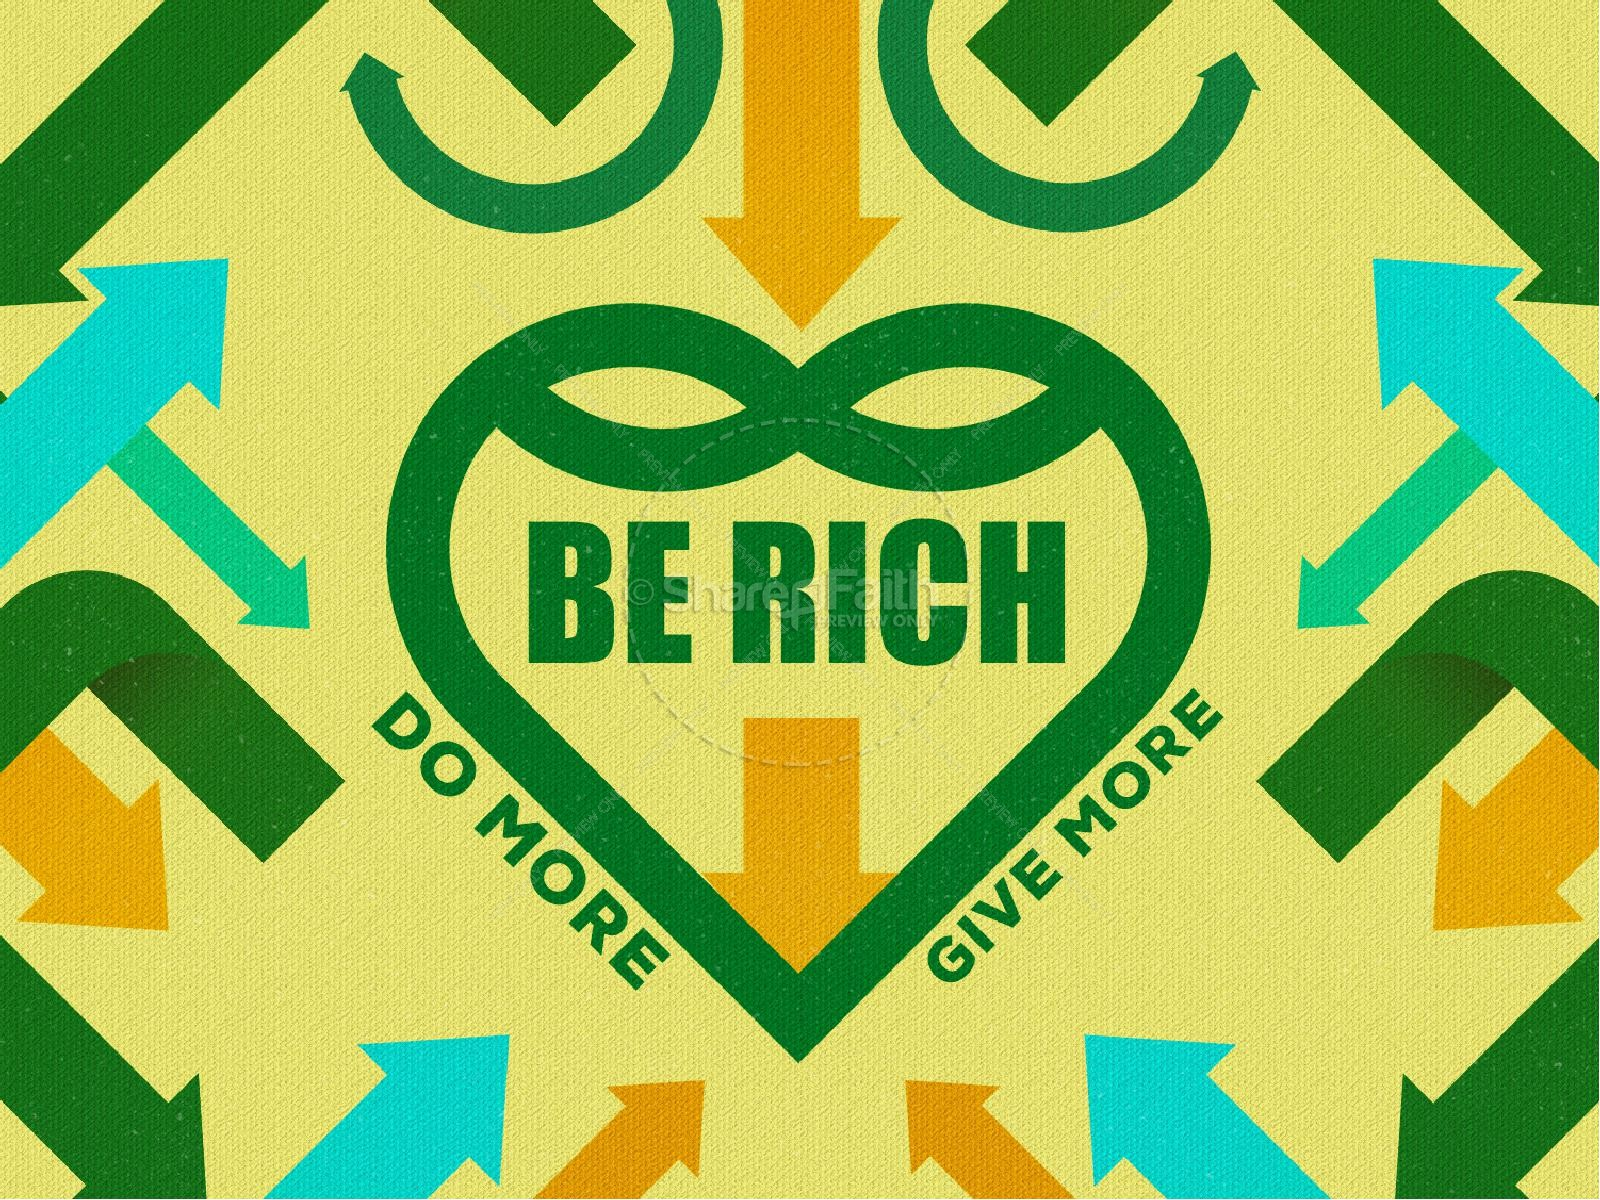 Be Rich Church Sermon Powerpoint